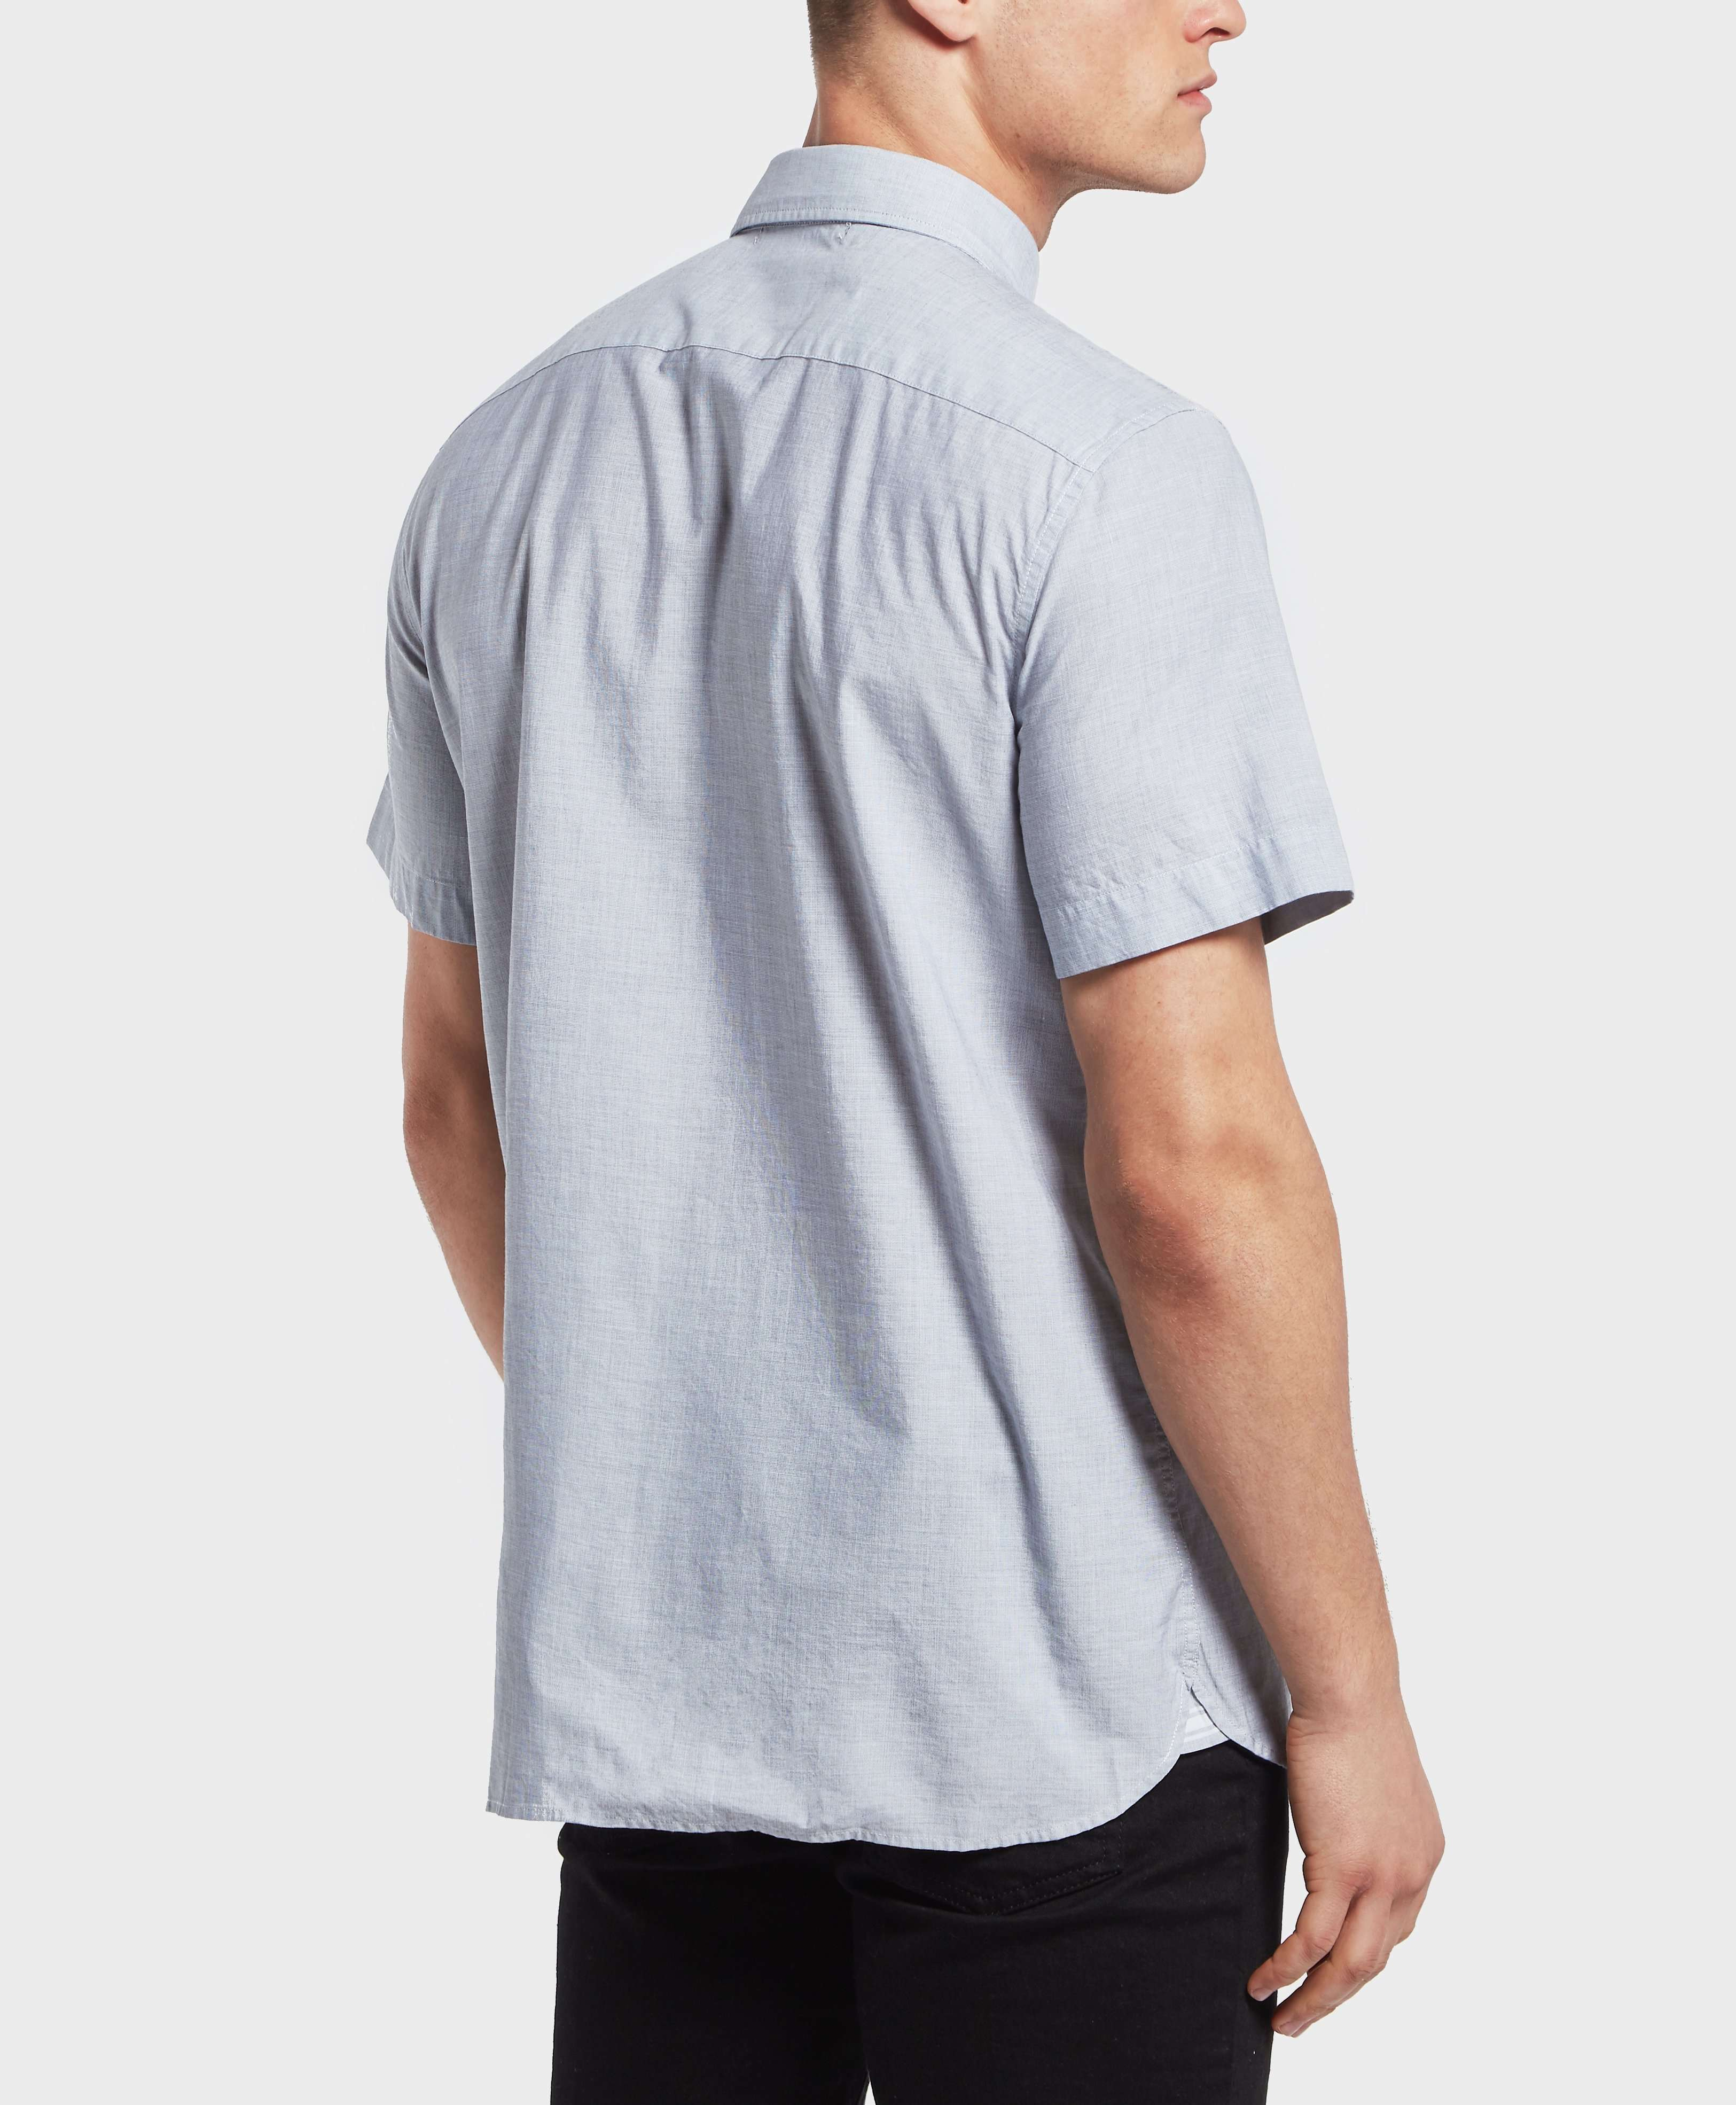 Lacoste End On End Short Sleeve Shirt